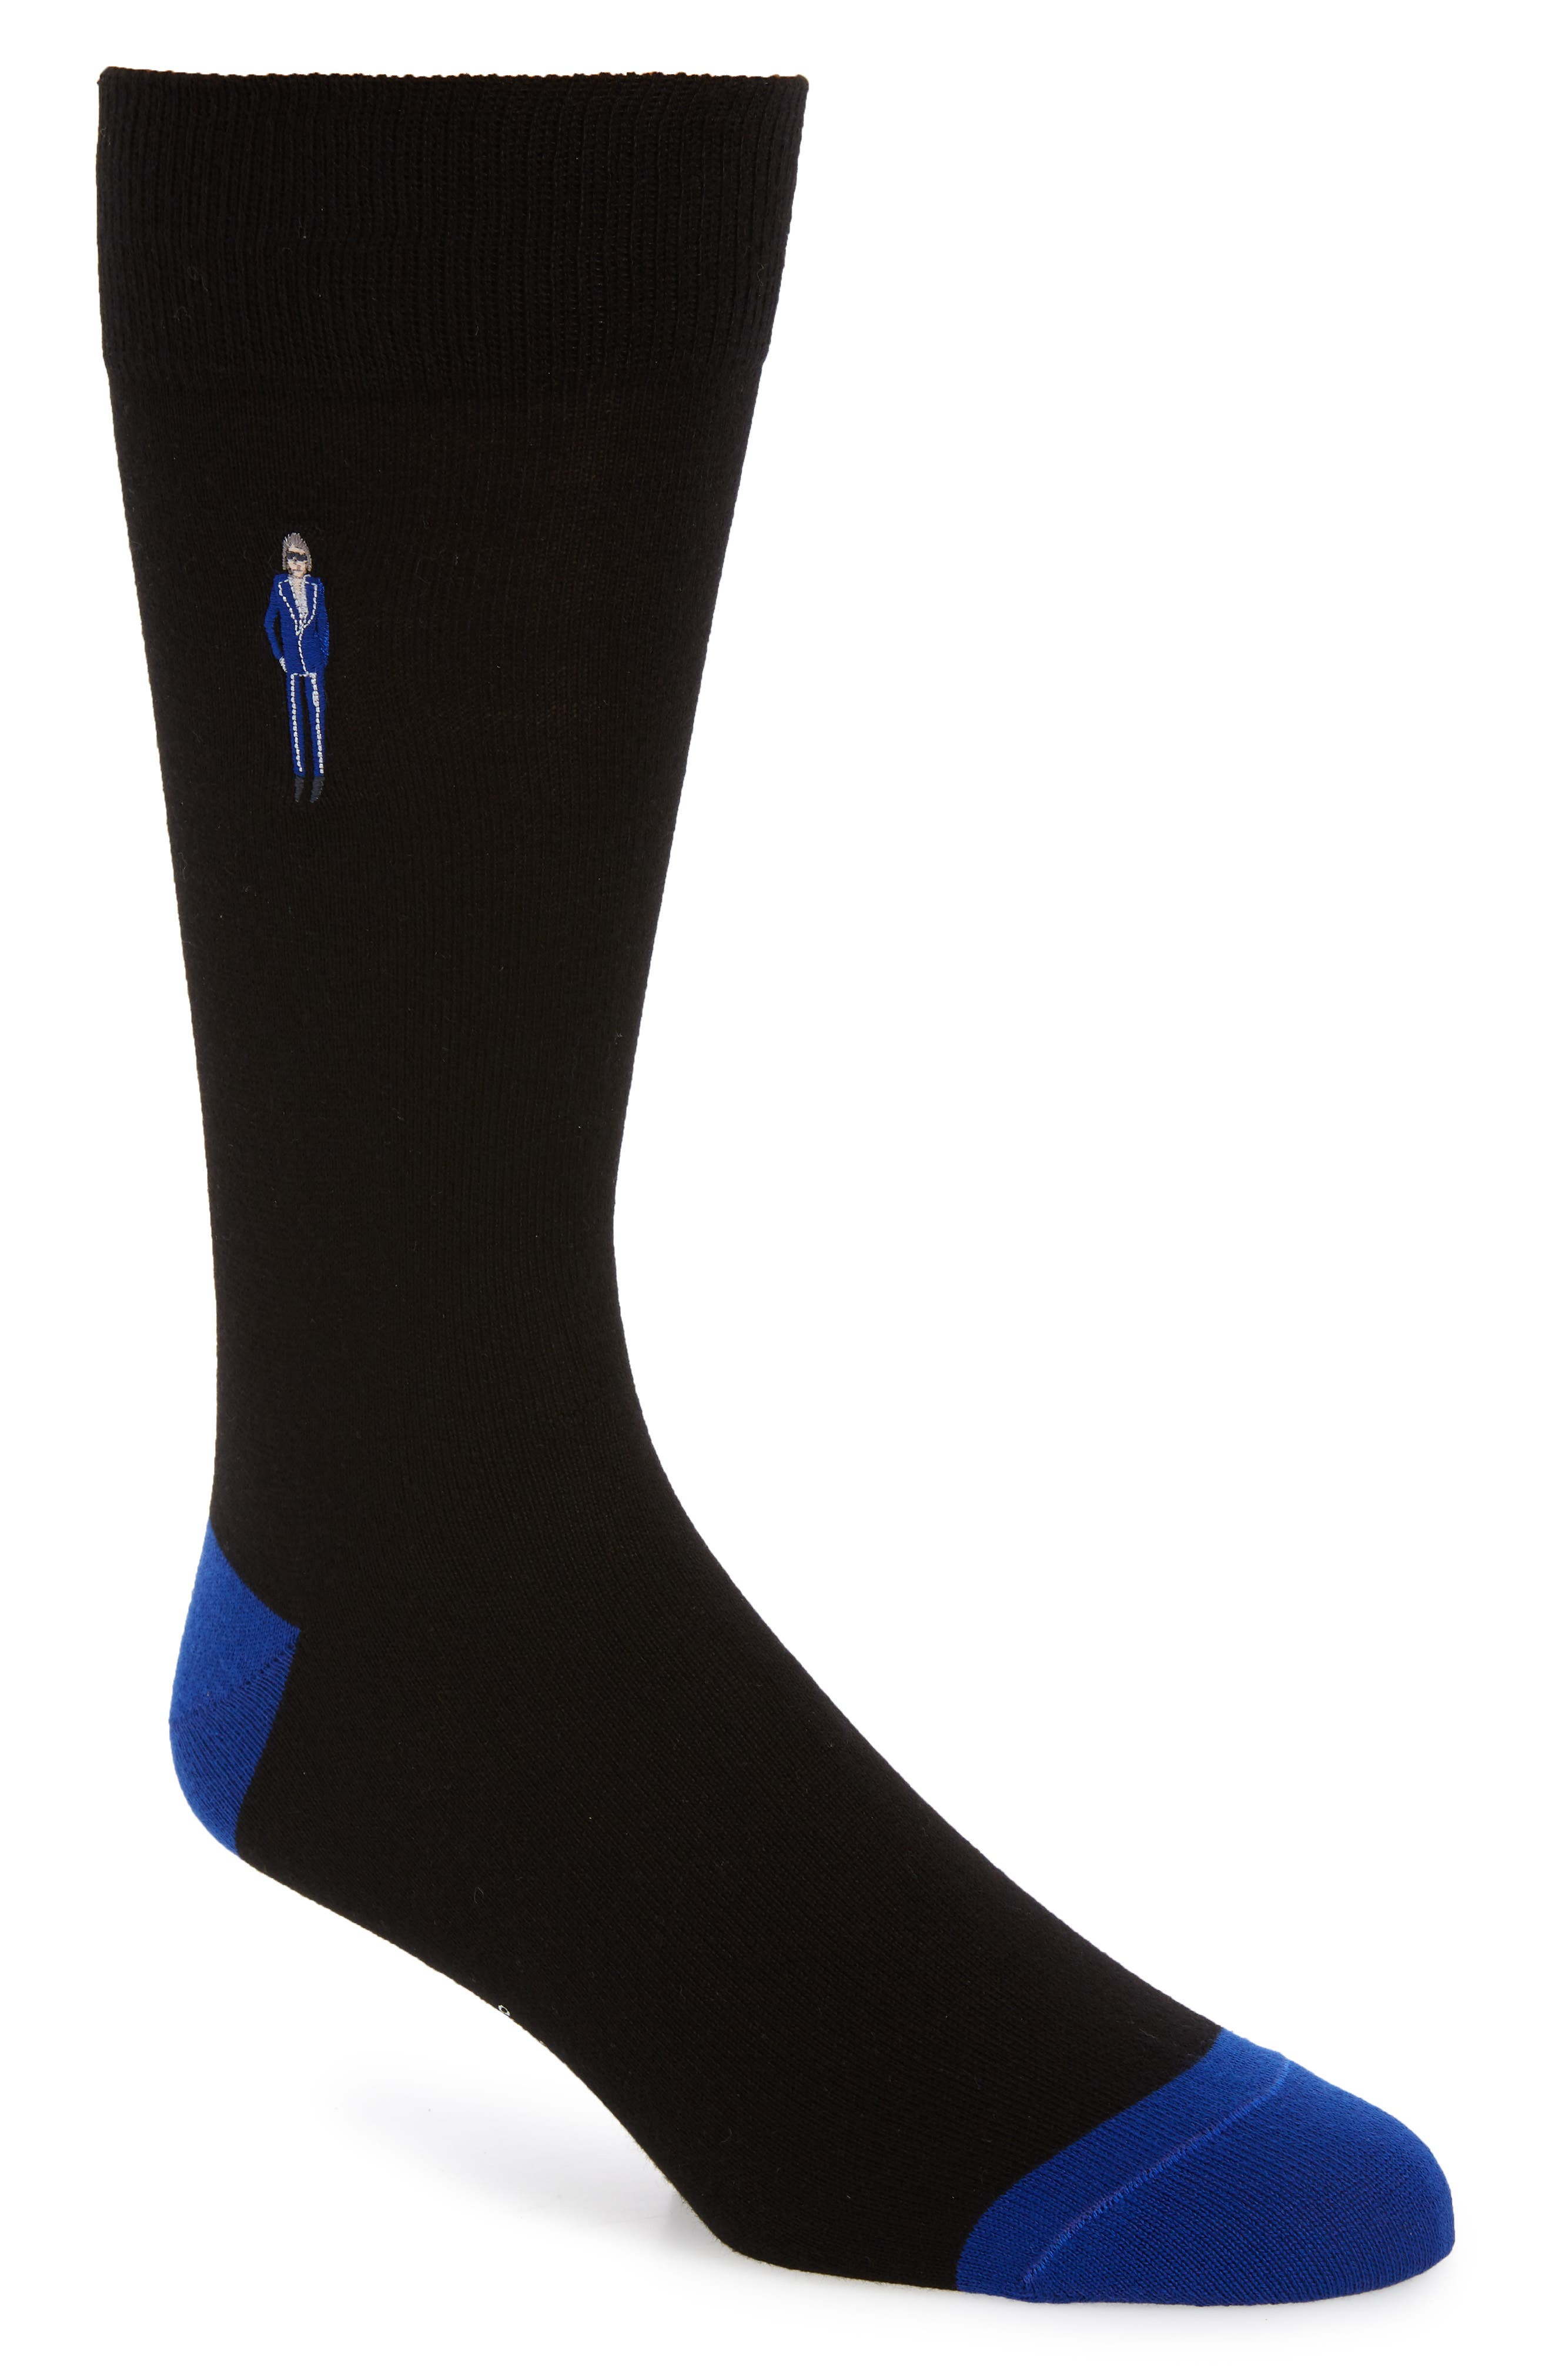 PAUL SMITH, Embroidered People Socks, Main thumbnail 1, color, BLACK